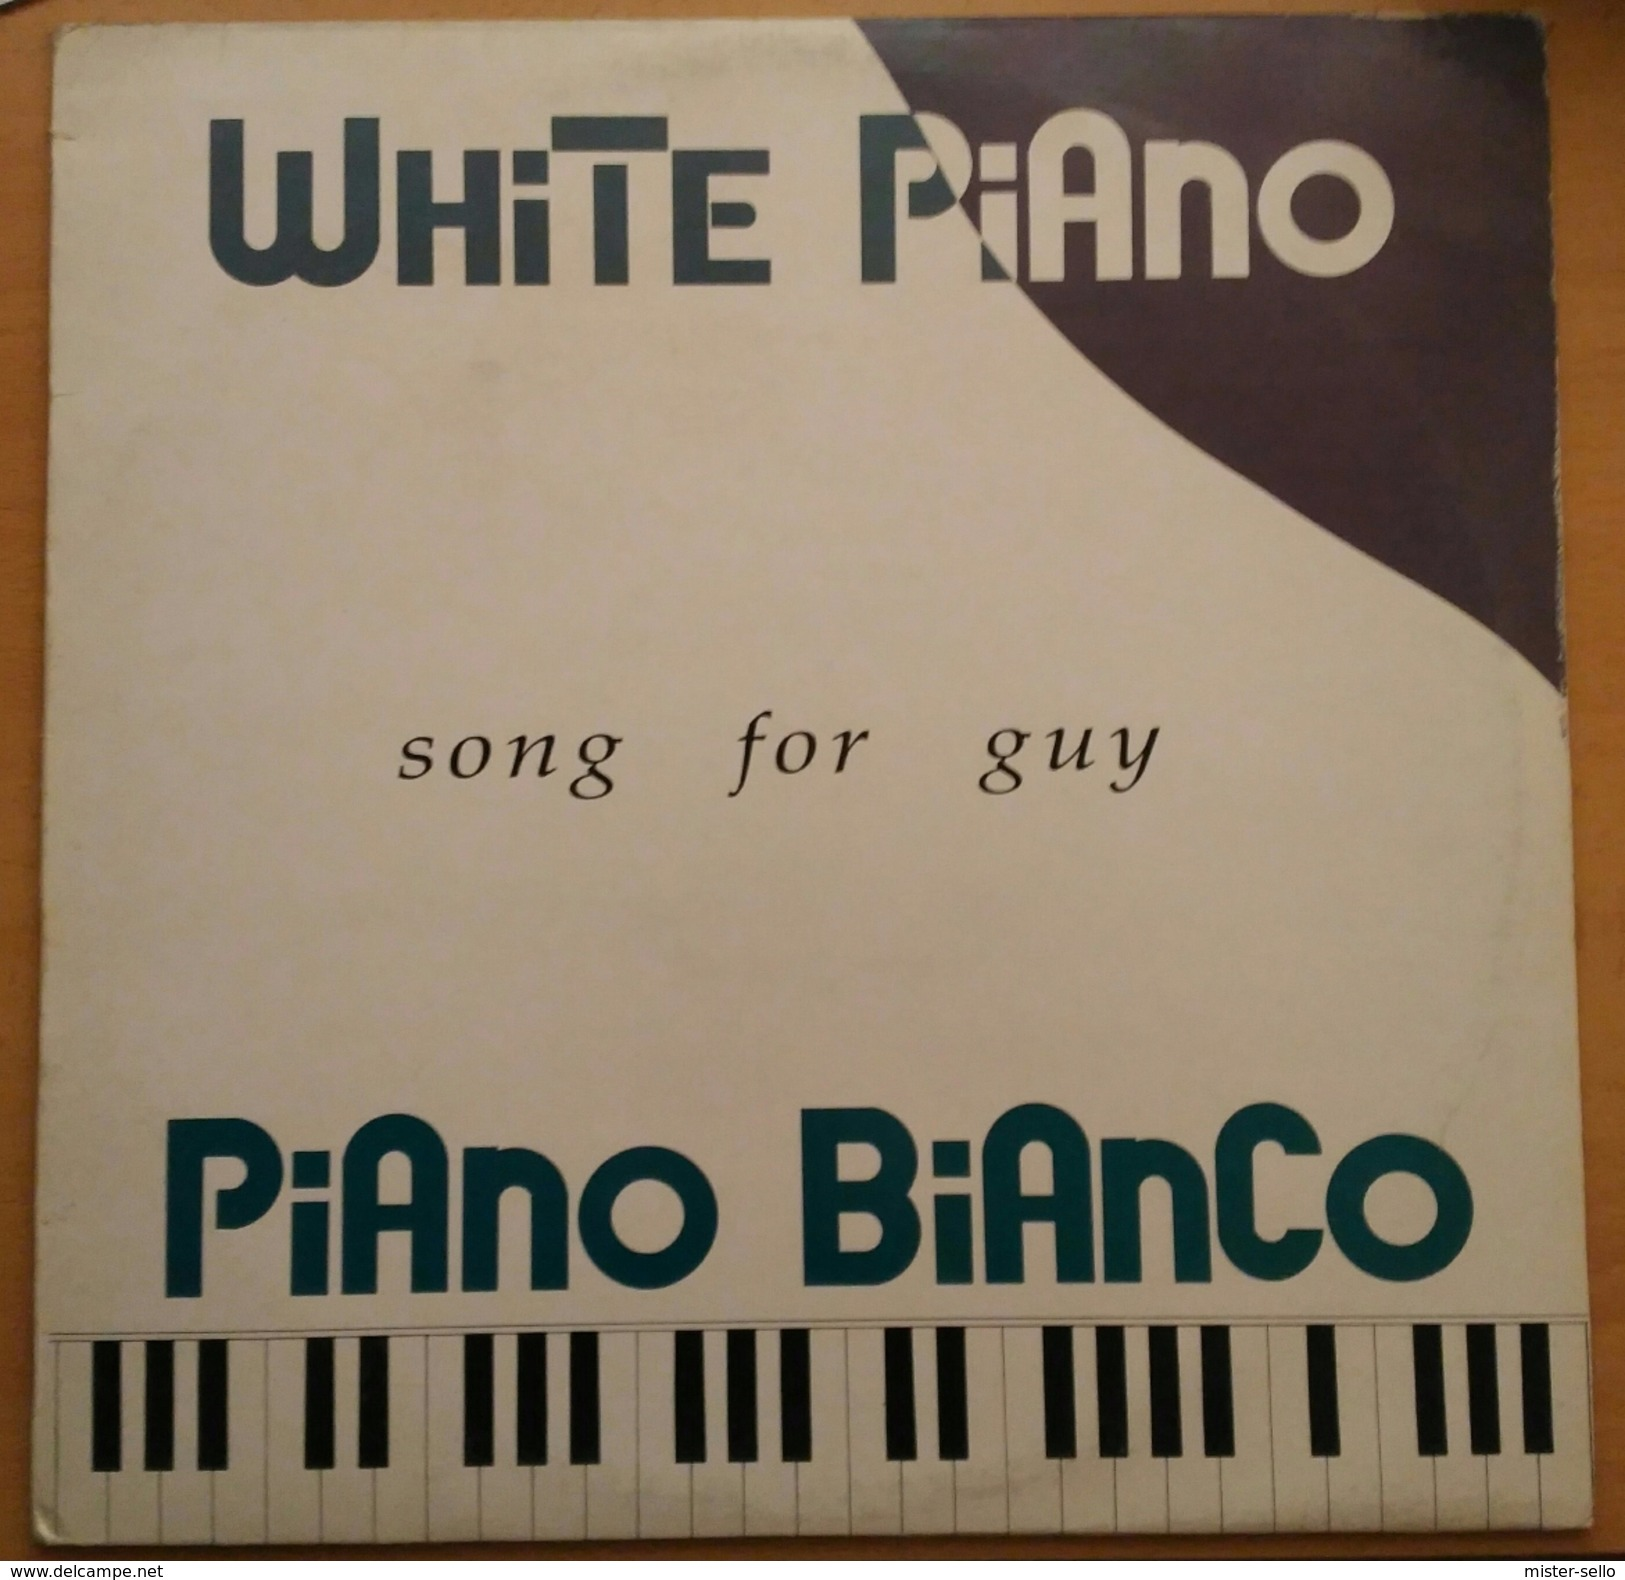 WHITE PIANO - SONG FOR GUY. USADO - USED. - 45 T - Maxi-Single